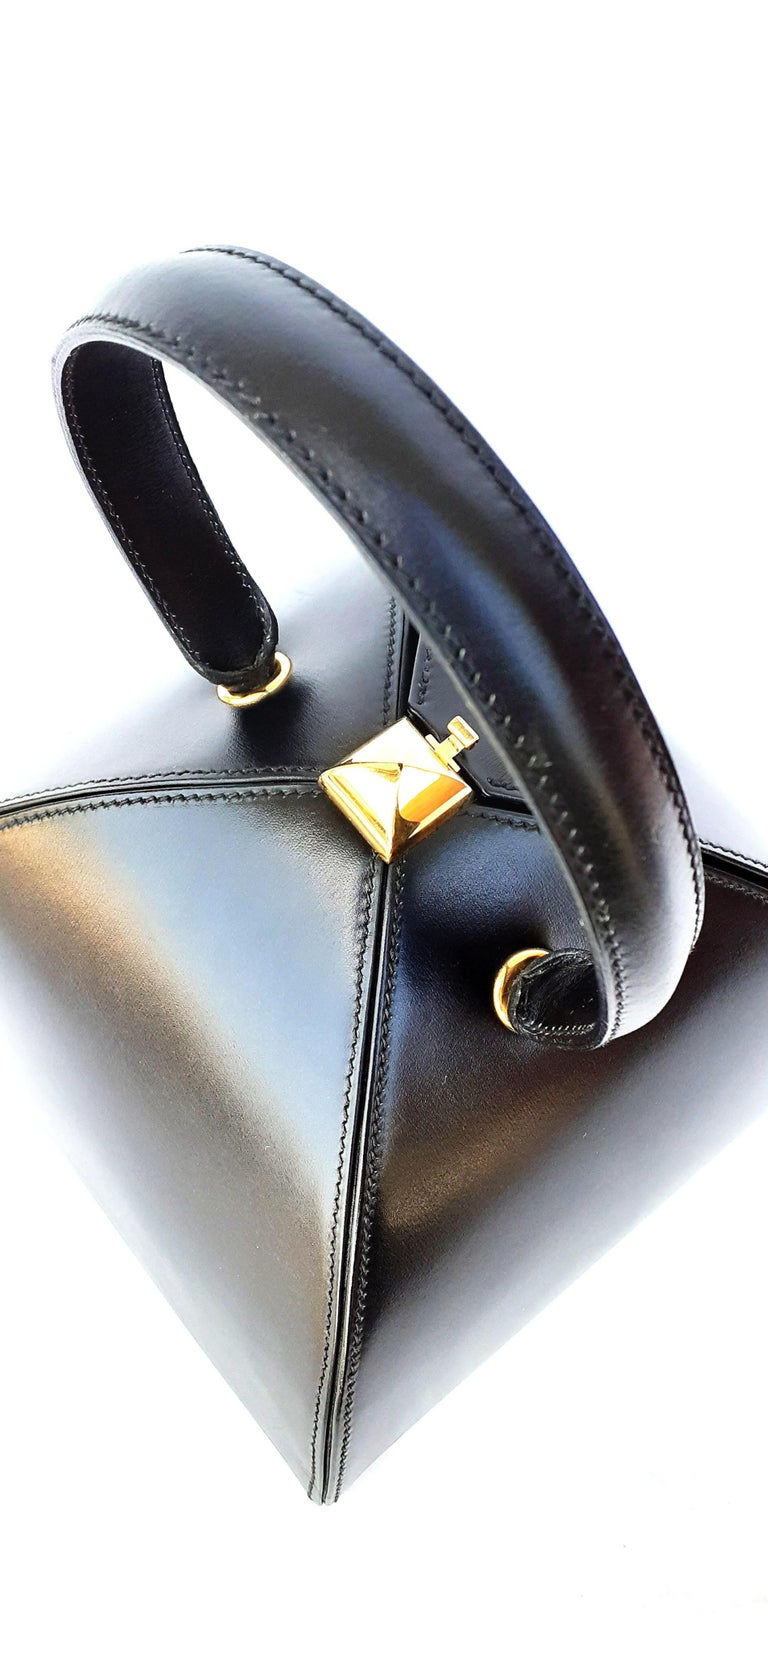 Exceptional Hermès Vintage Tee Time Bag Minaudiere Black Box Leather Ghw RARE For Sale 8